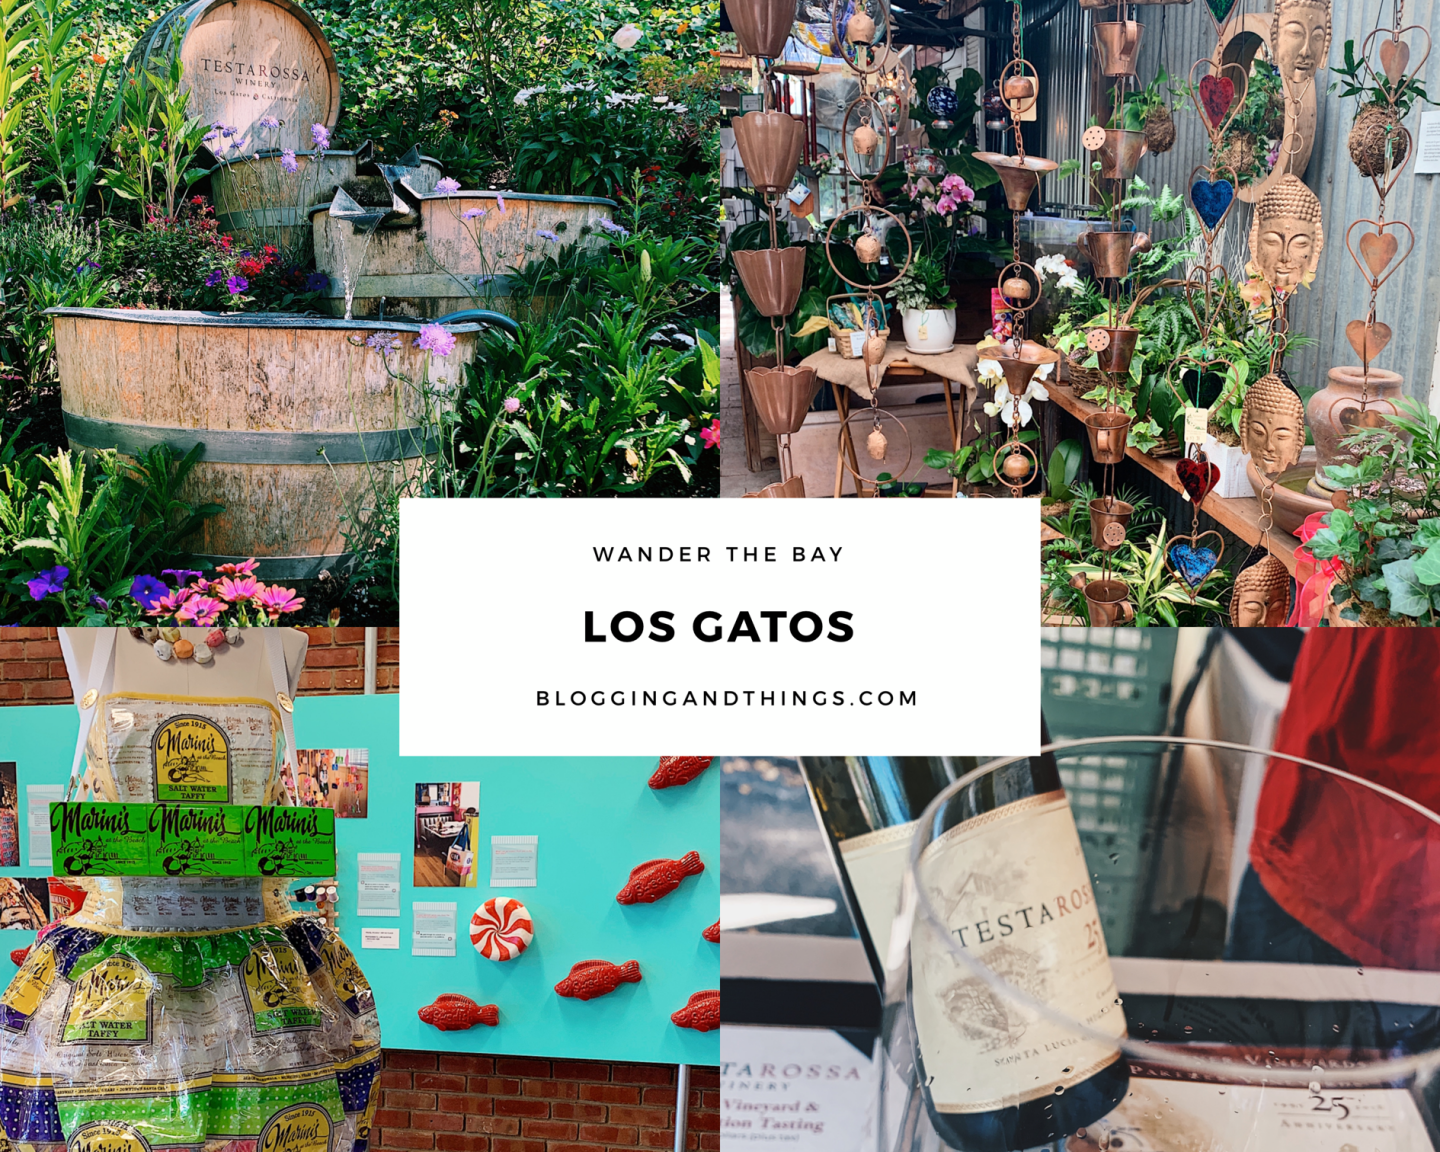 Wander the Bay: Los Gatos